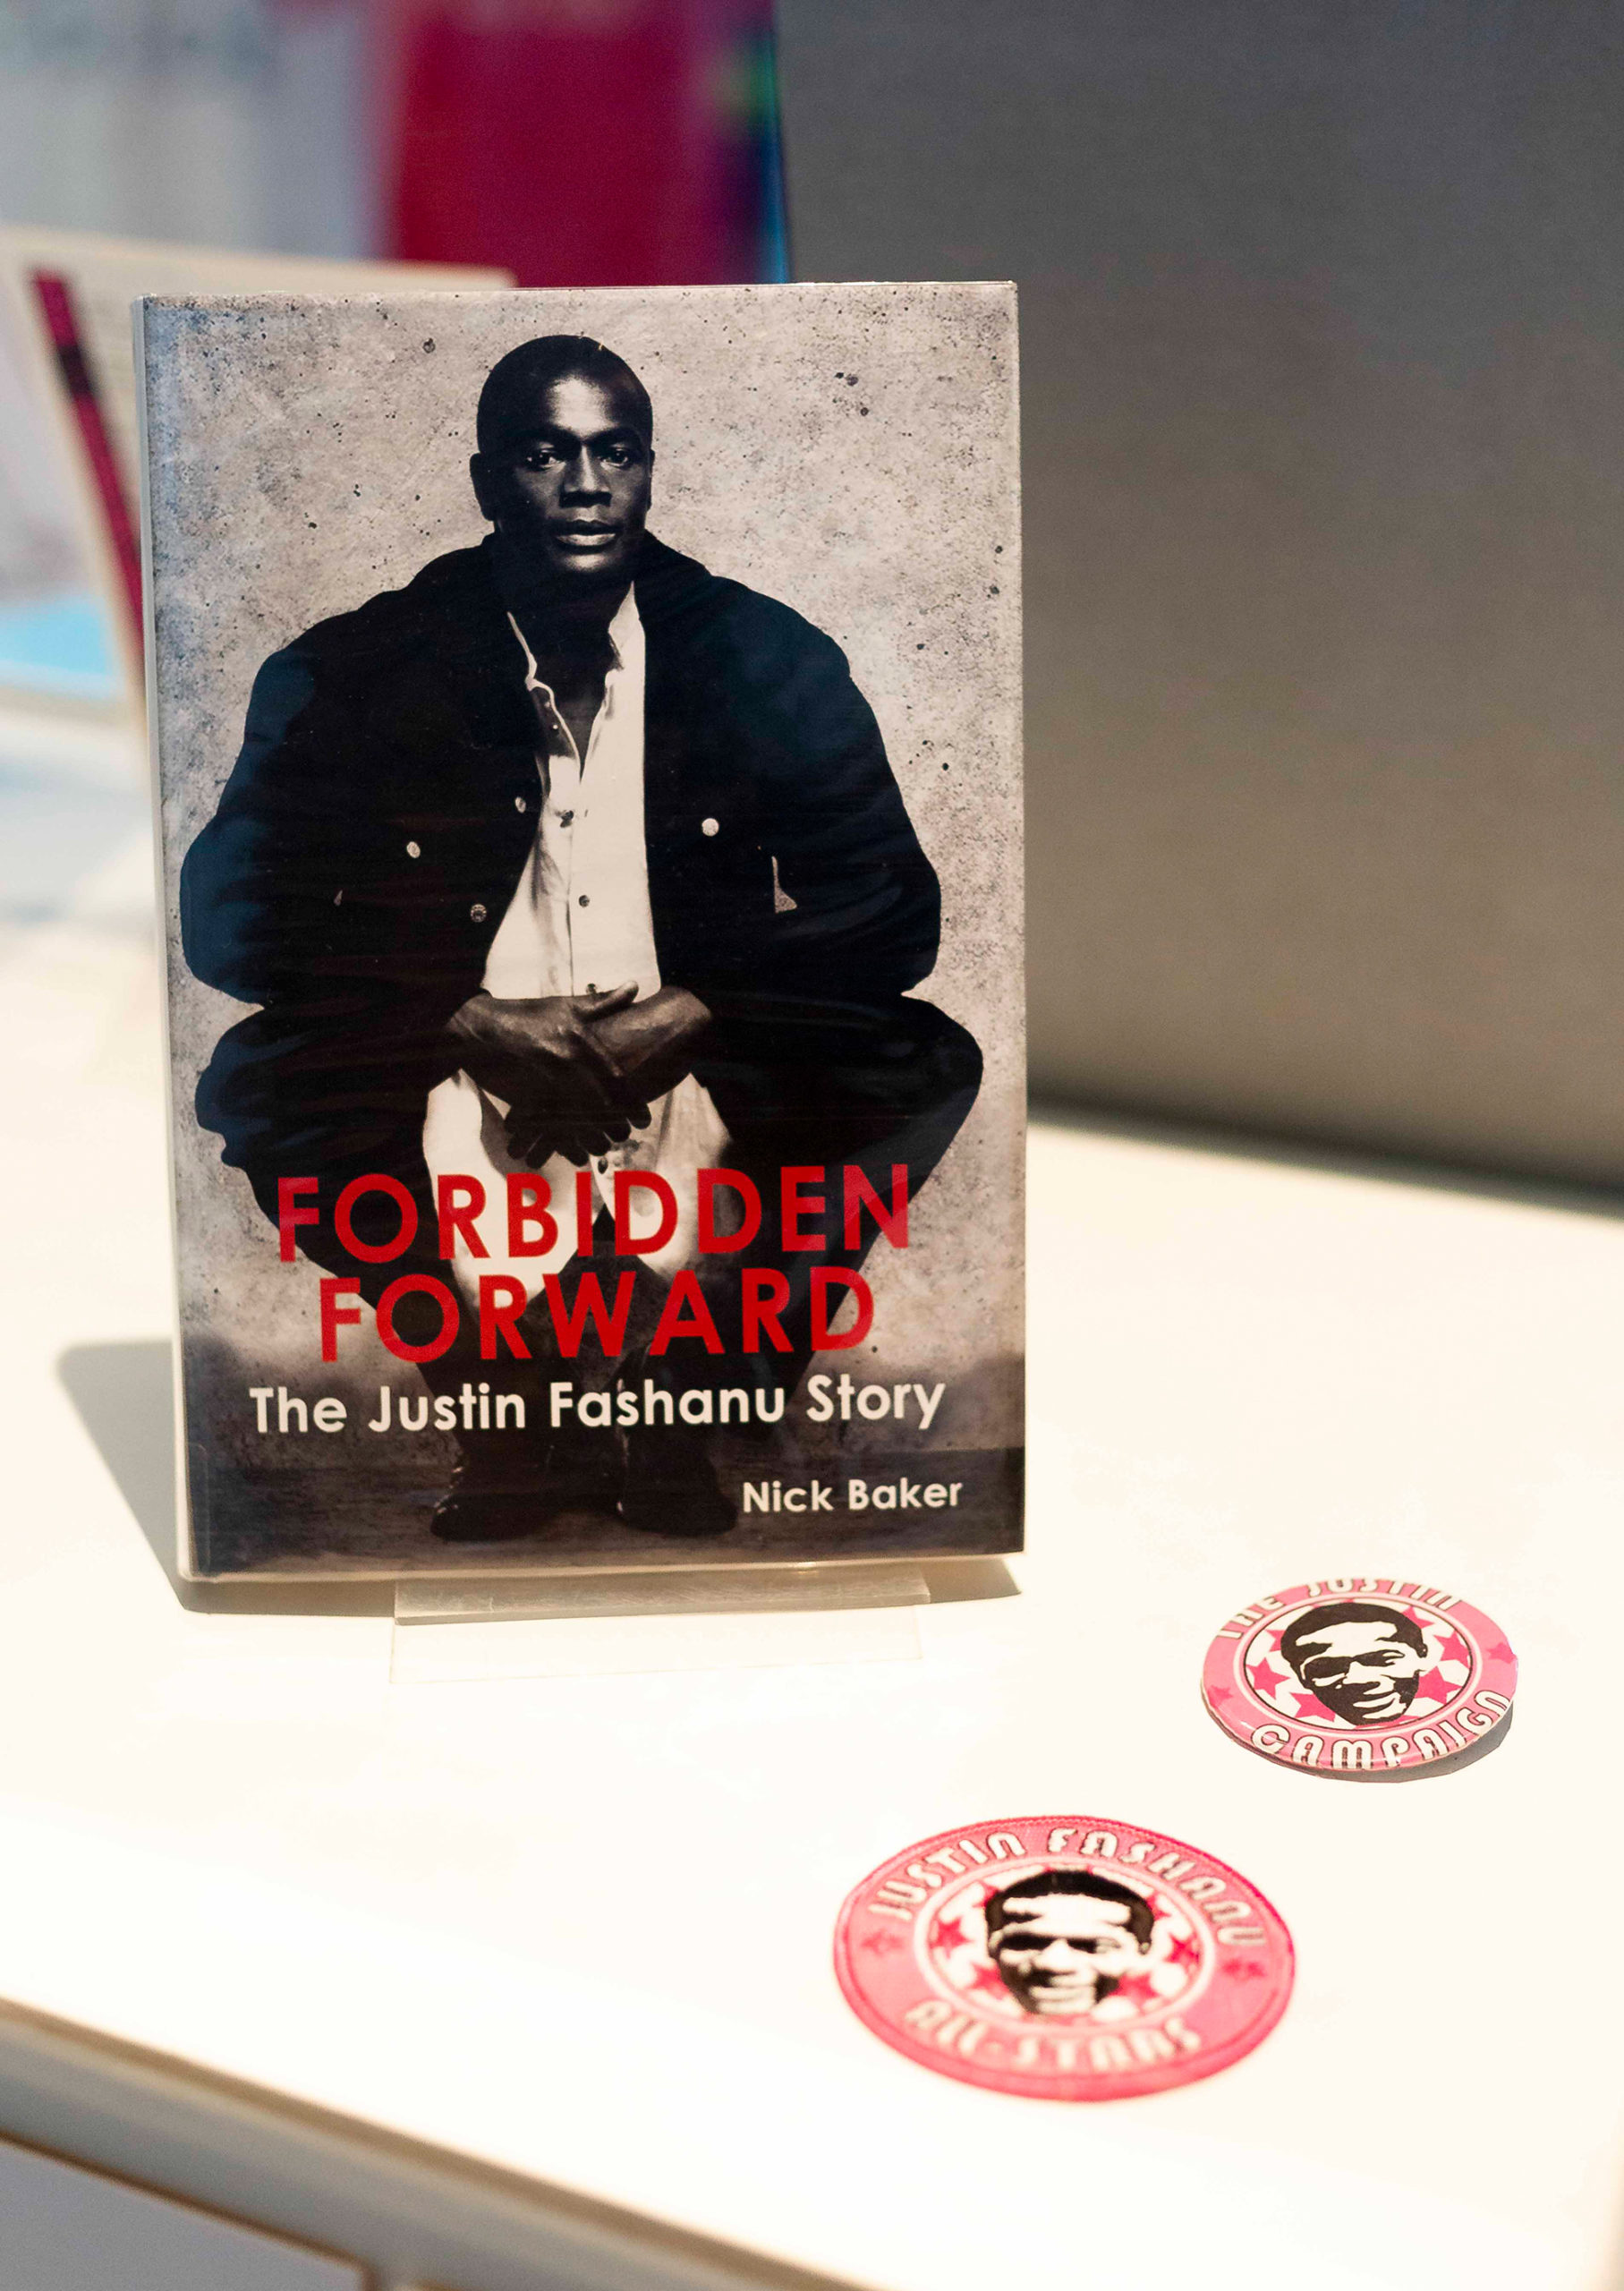 A photograph of Forbidden Forward: The Justin Fashanu Story by Nick Baker, and Justin Fashanu All-Stars fabric patch, and Justin Campaign badge.